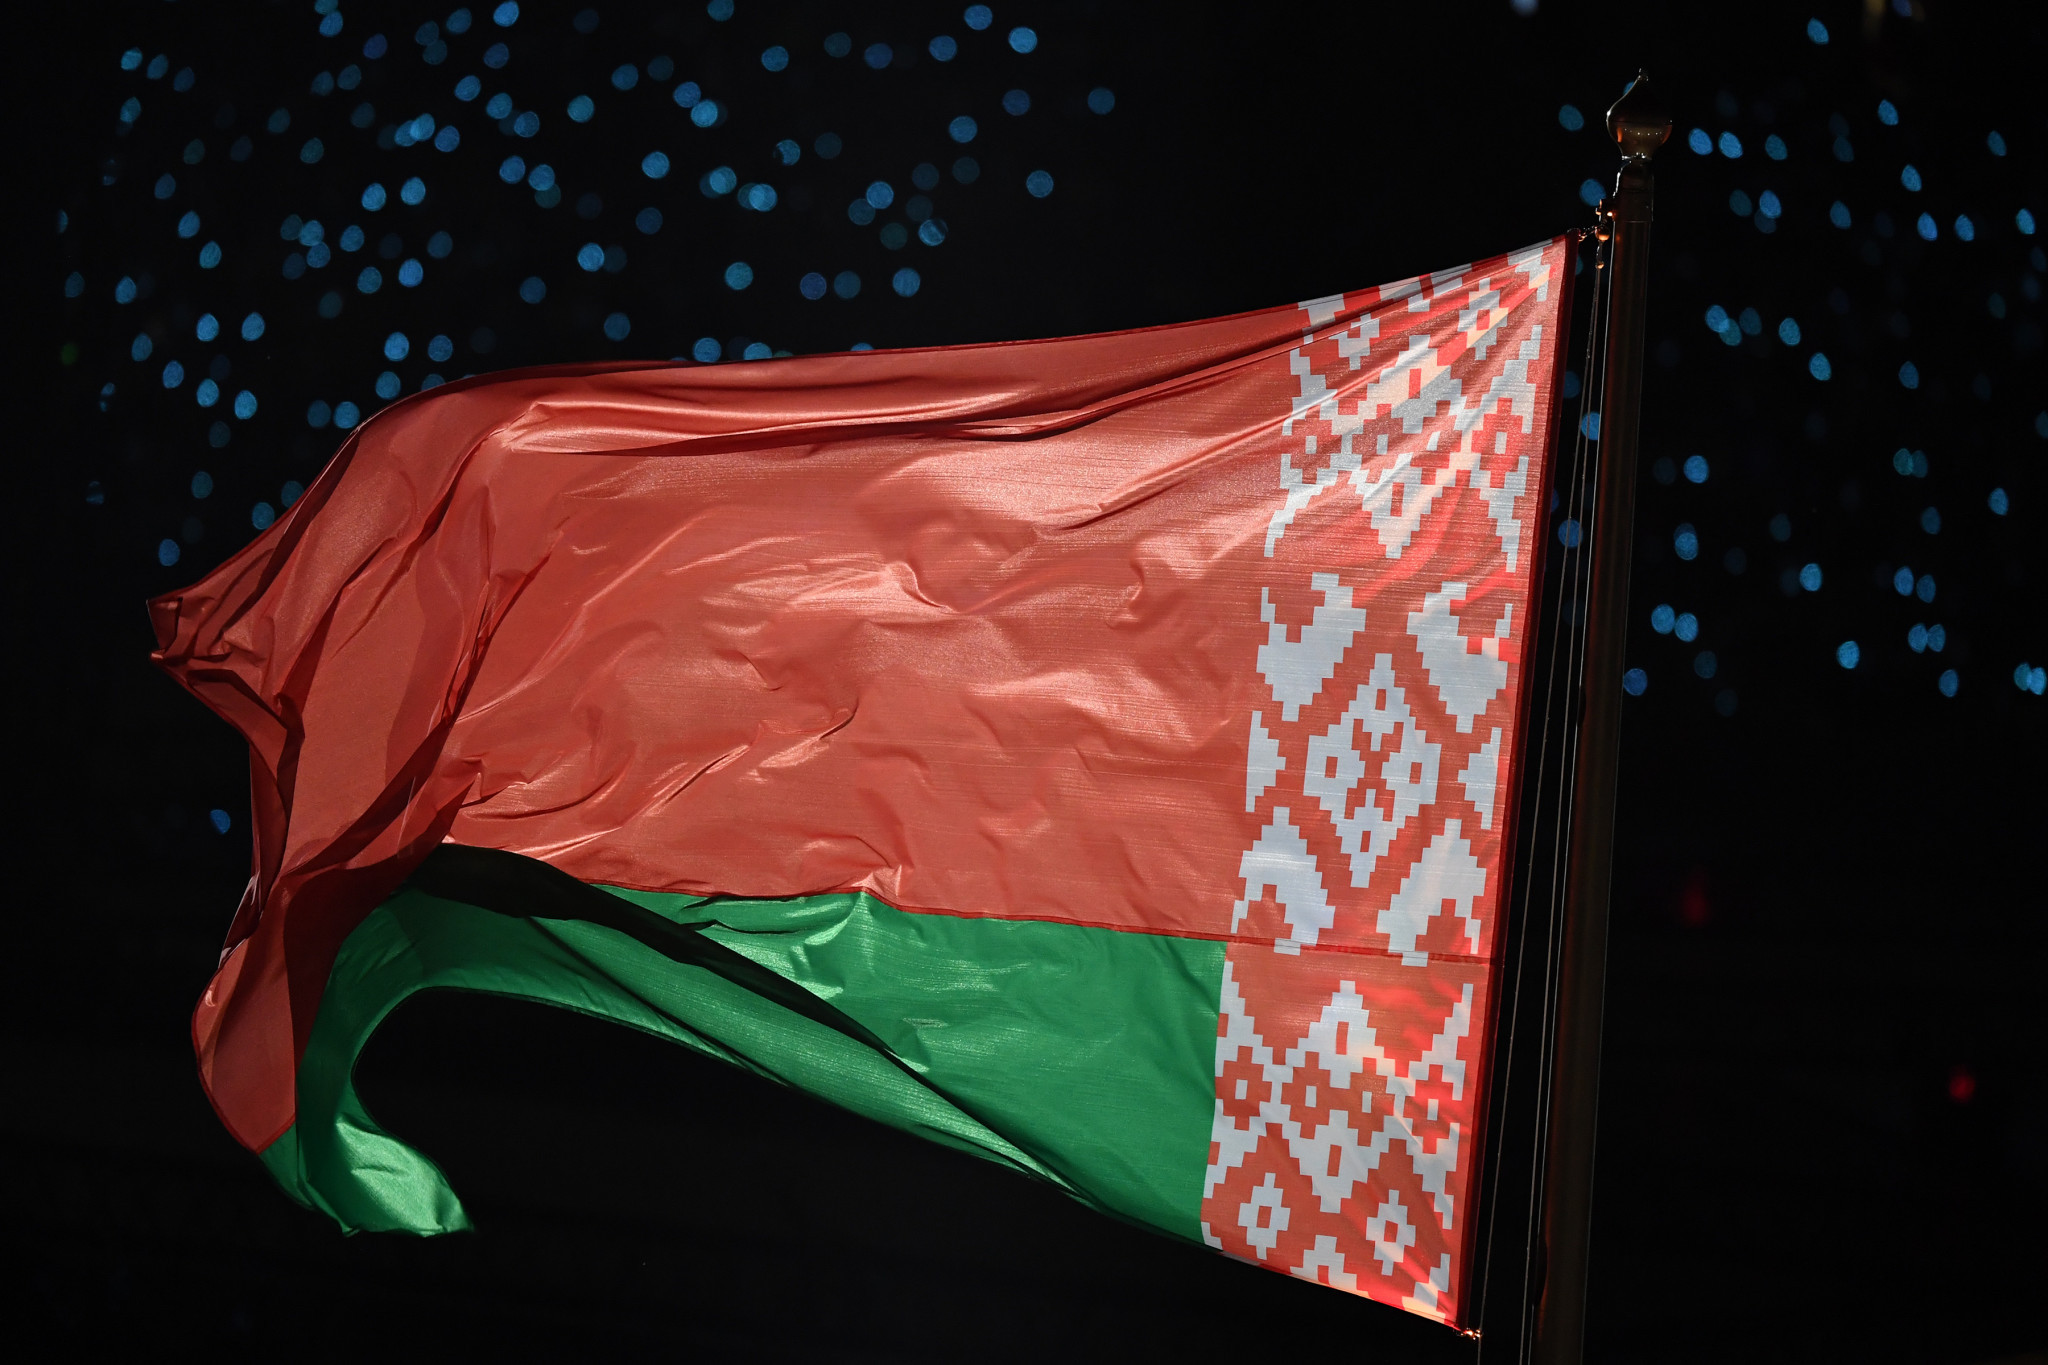 Belarus will be represented by 19 athletes in five sports at this month's Winter Youth Olympic Games in Lausanne ©Getty Images